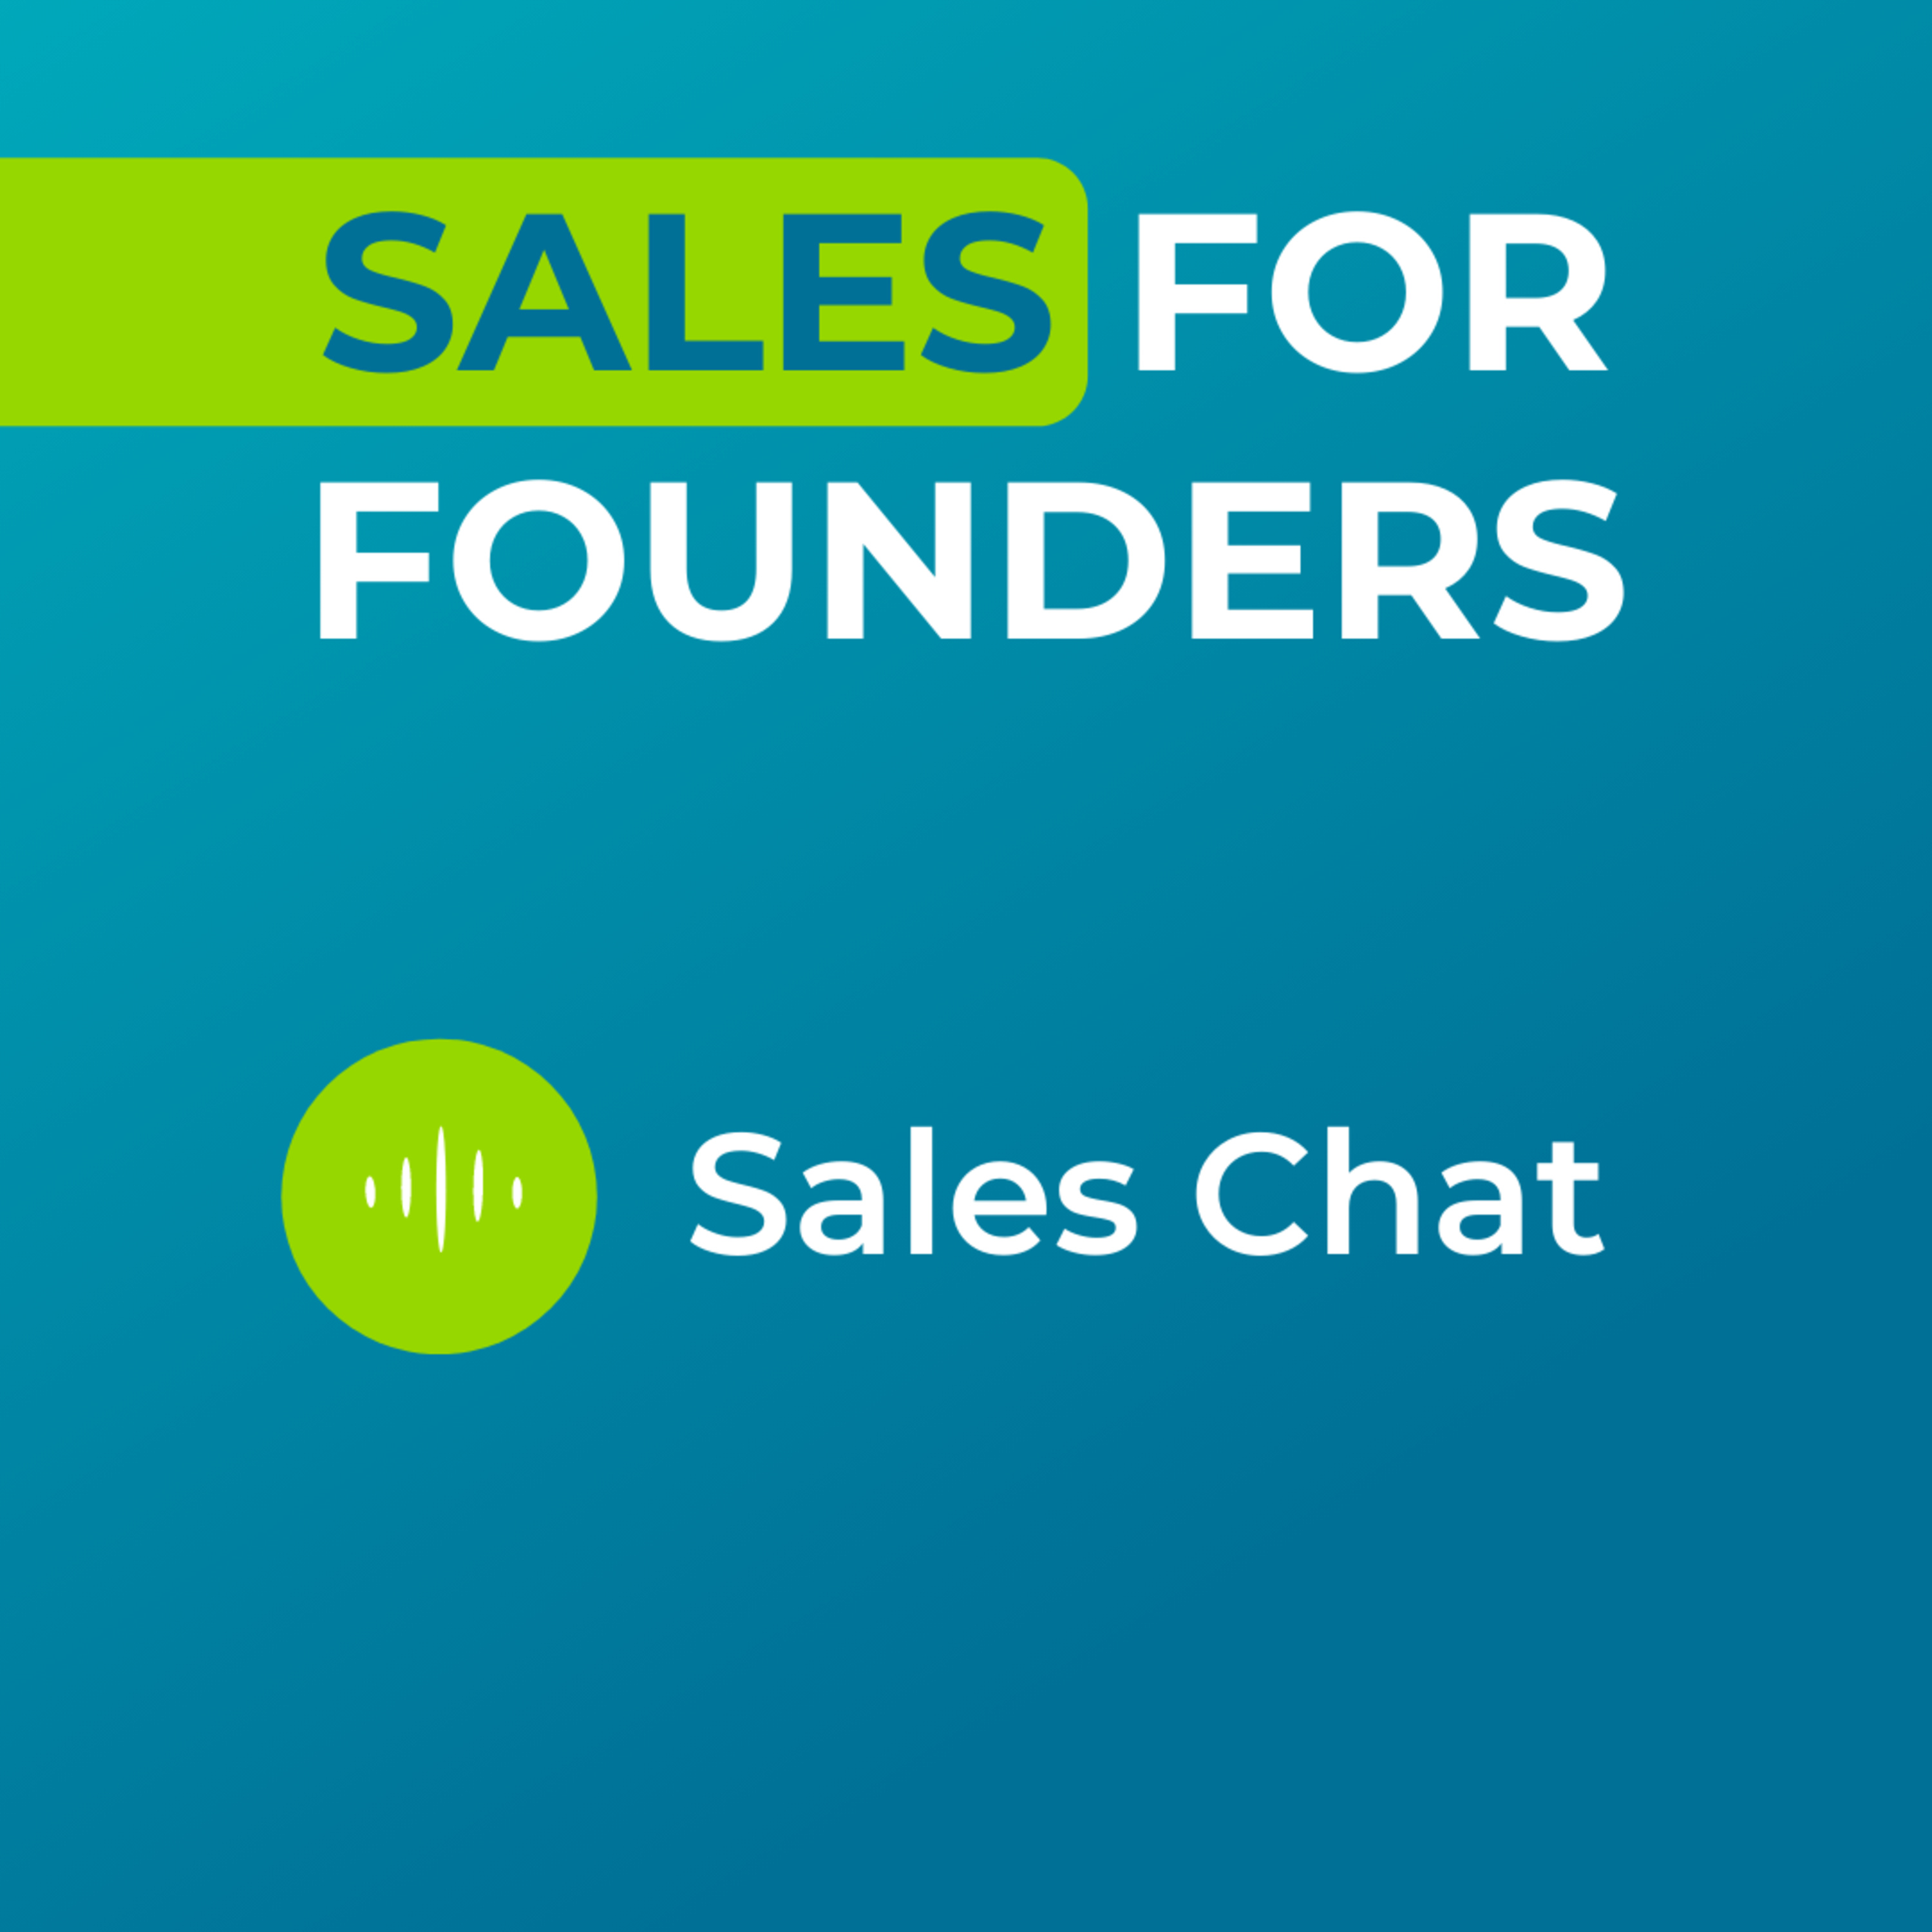 Sales Chat #4 - Optimizing that first sales call